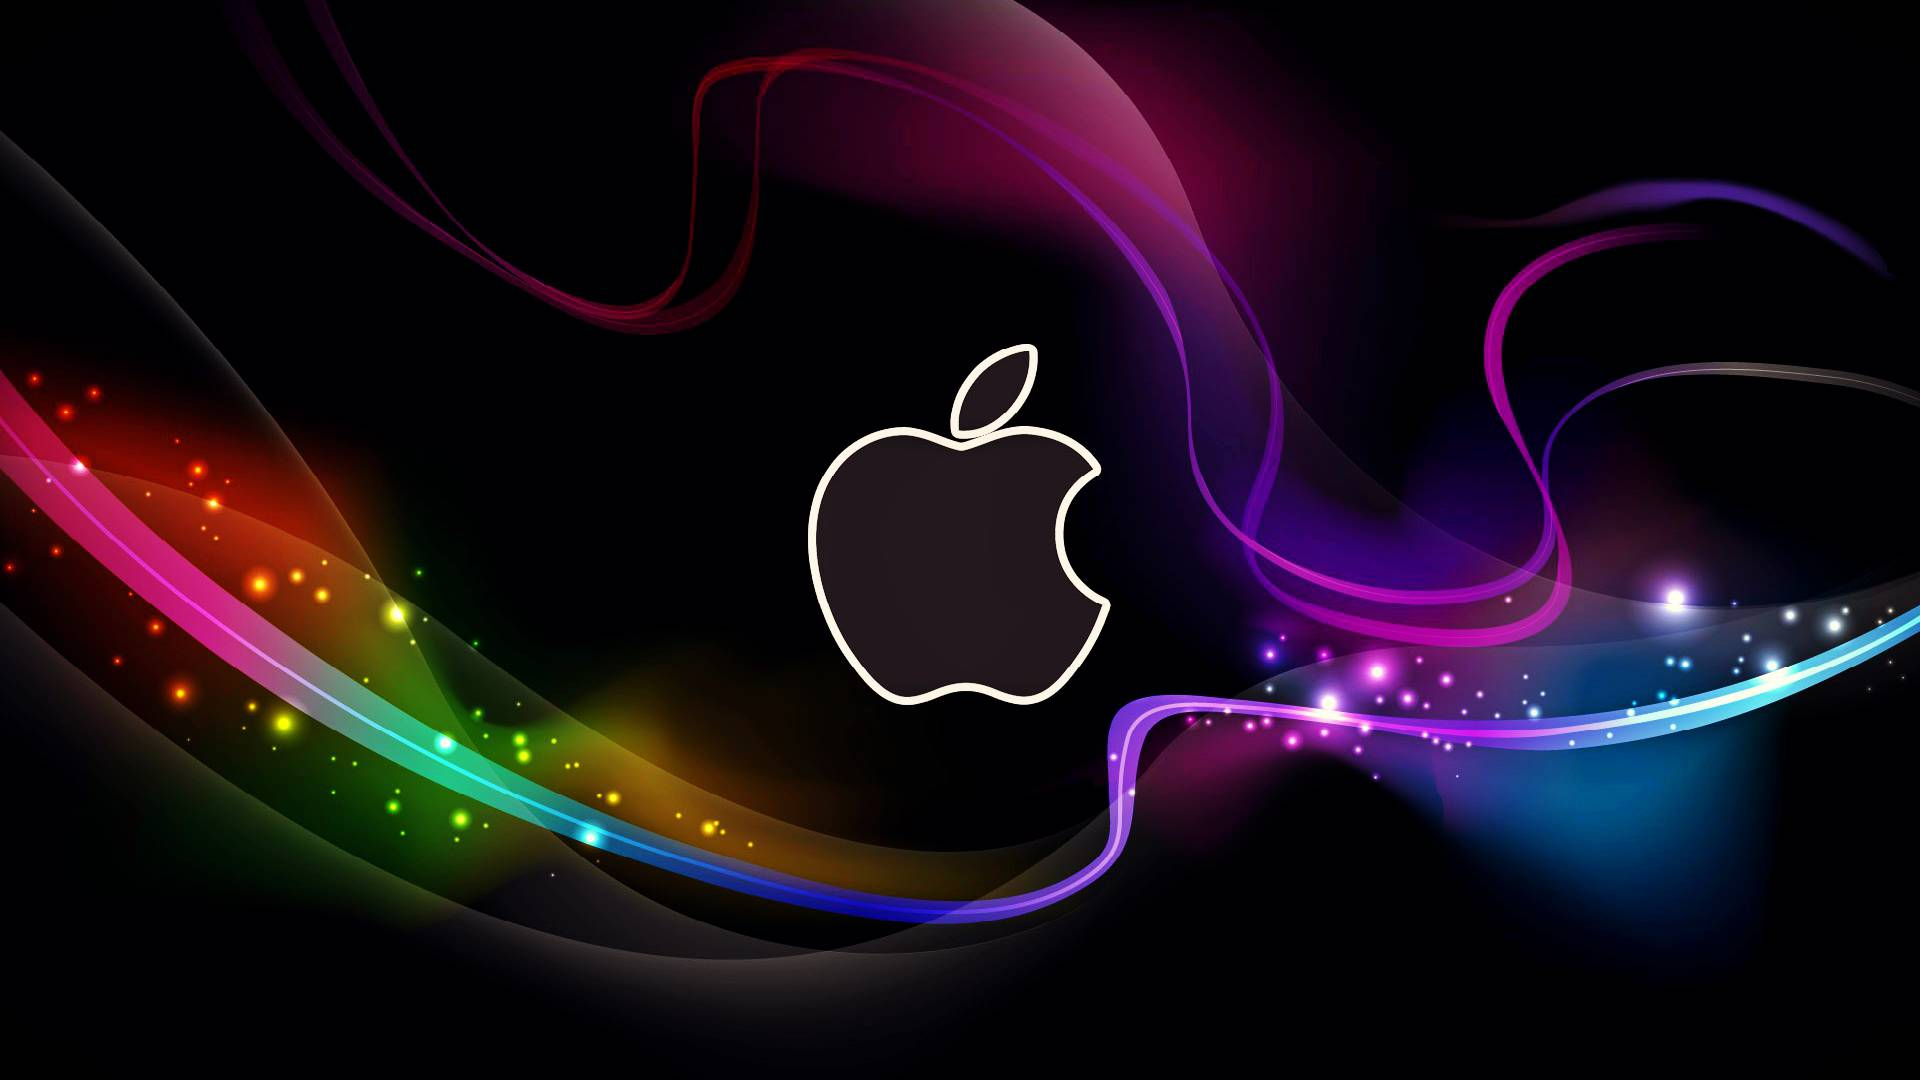 HD Cool Apple Logo with Abstract Background Wallpapers - HD